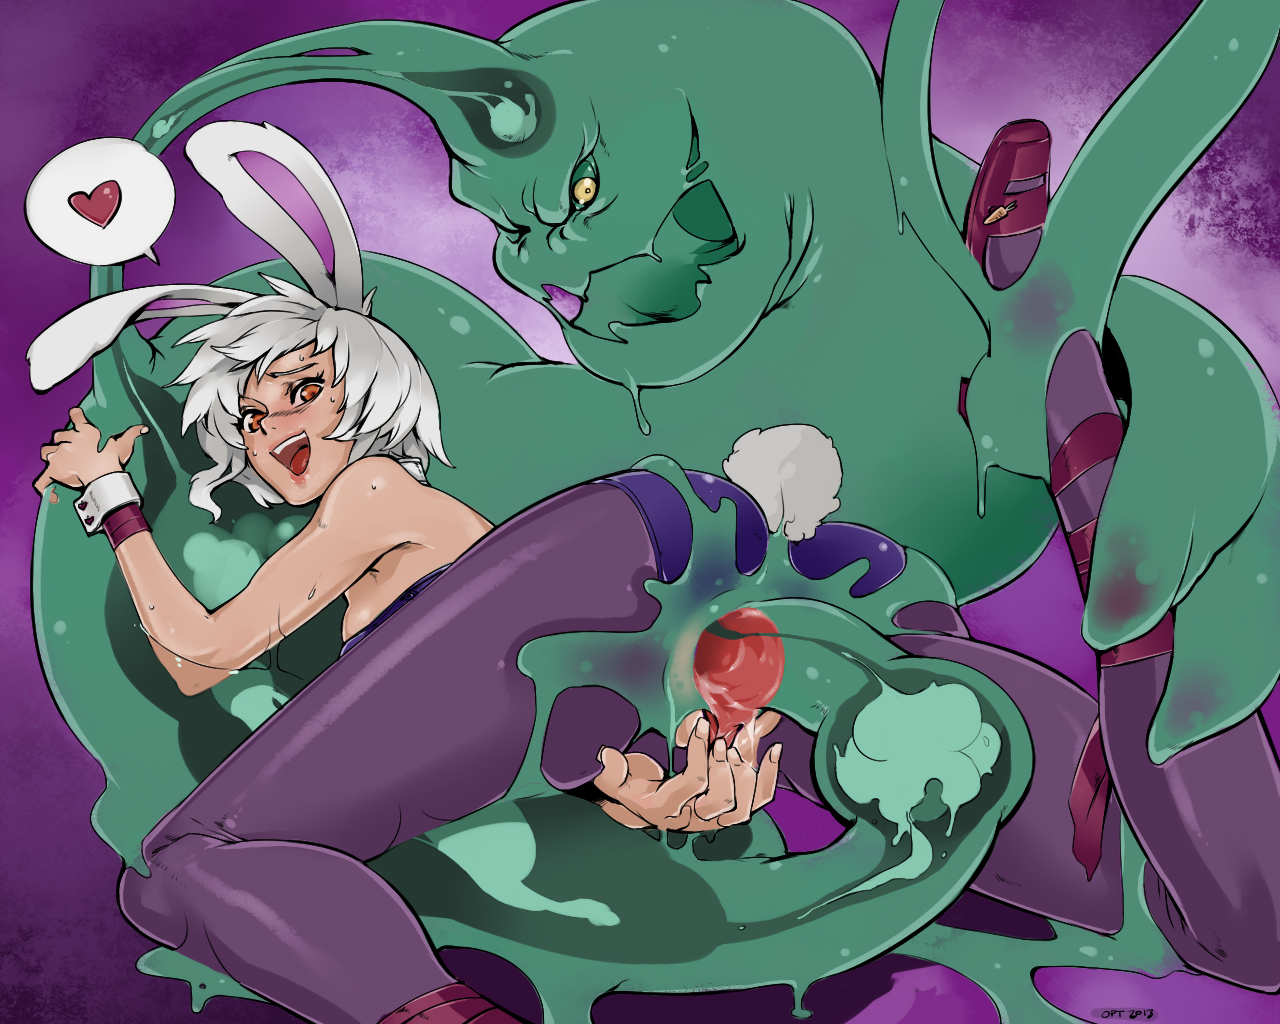 Riven Getting Fucked by Zac